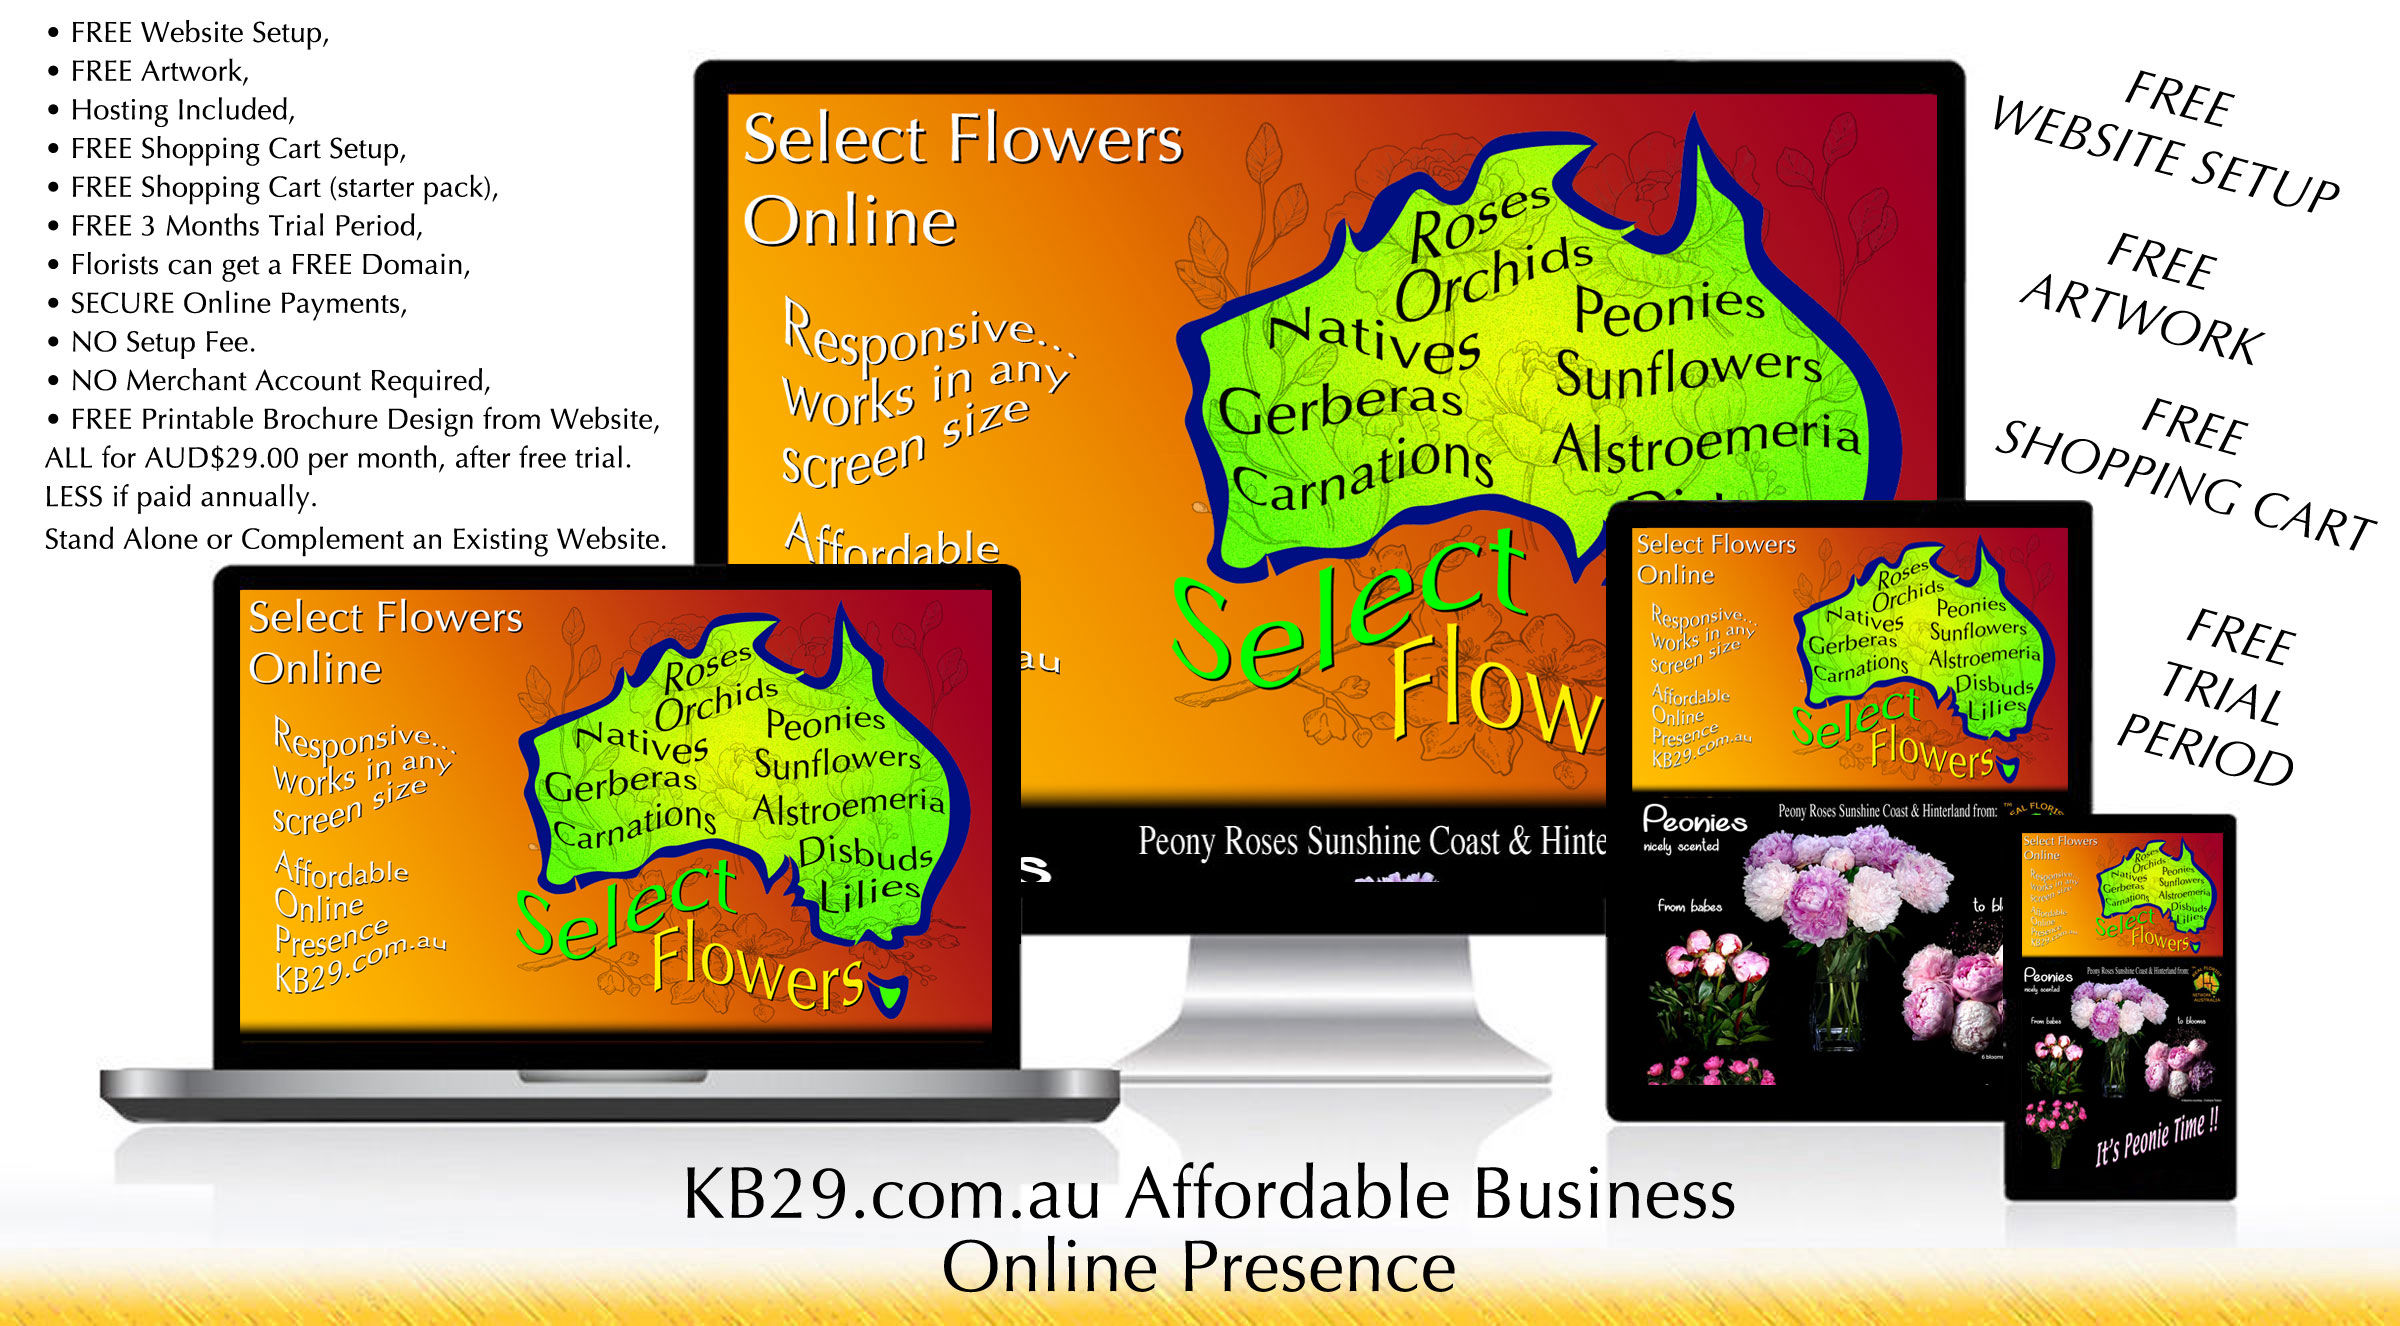 KB29 FREE WEBSITE & e-COMMERCE SETUP